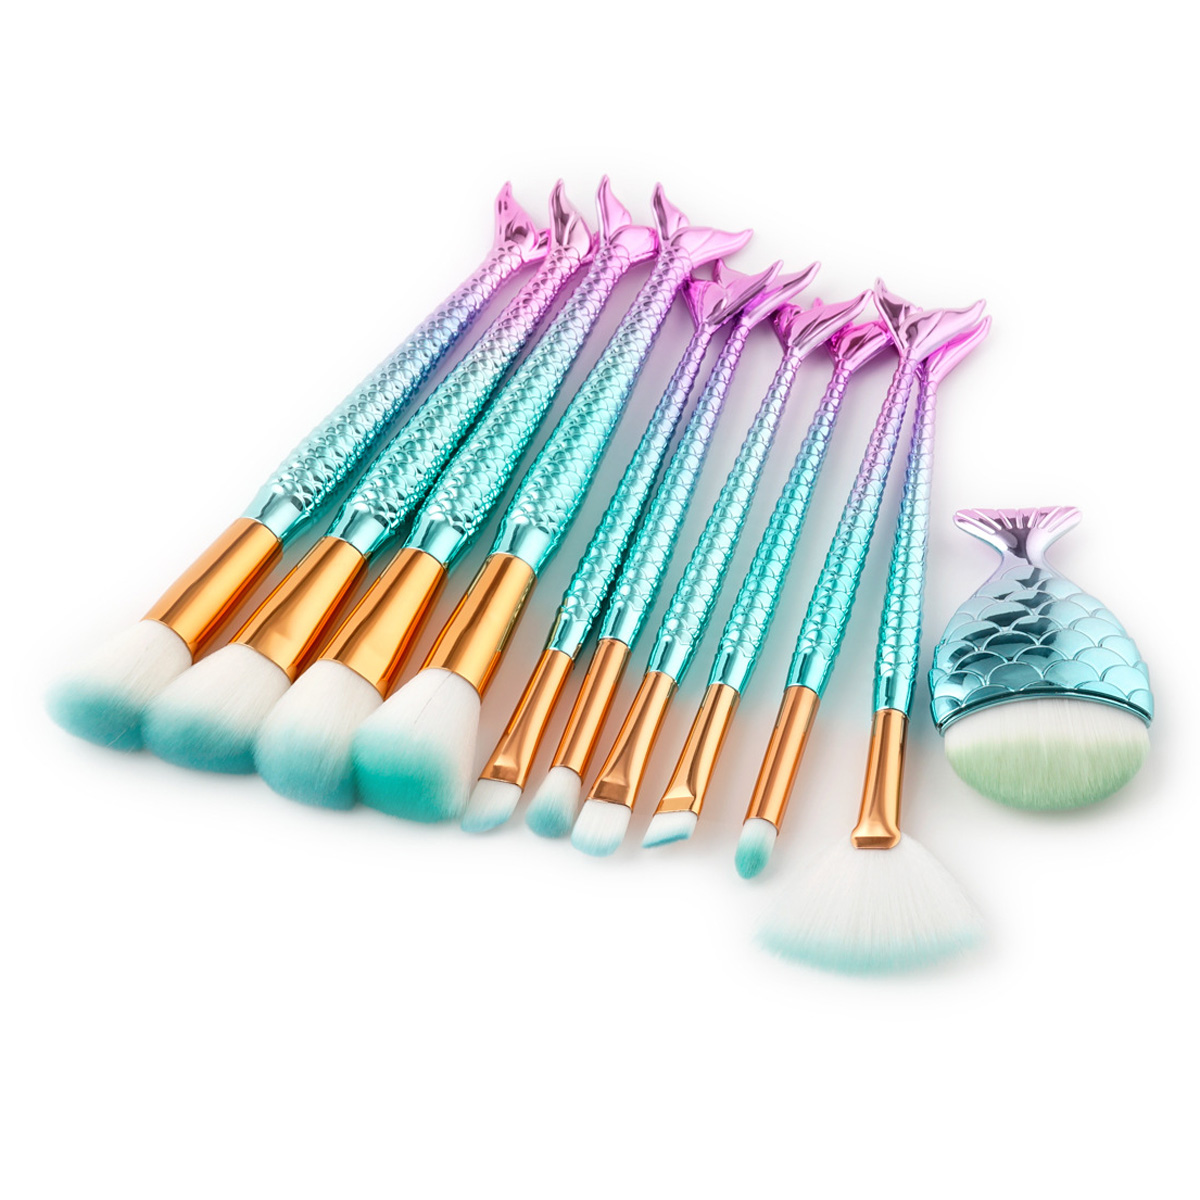 11Pc Mermaid Makeup Brush Set Eyebrow Eyeliner Blush Blending Contour Foundation Cosmetic Beauty Gradient Color Make Up Brushes kainuoa mermaid makeup brushes foundation eyebrow eyeliner blush blending contour hair brush red shell cosmetic make up brush